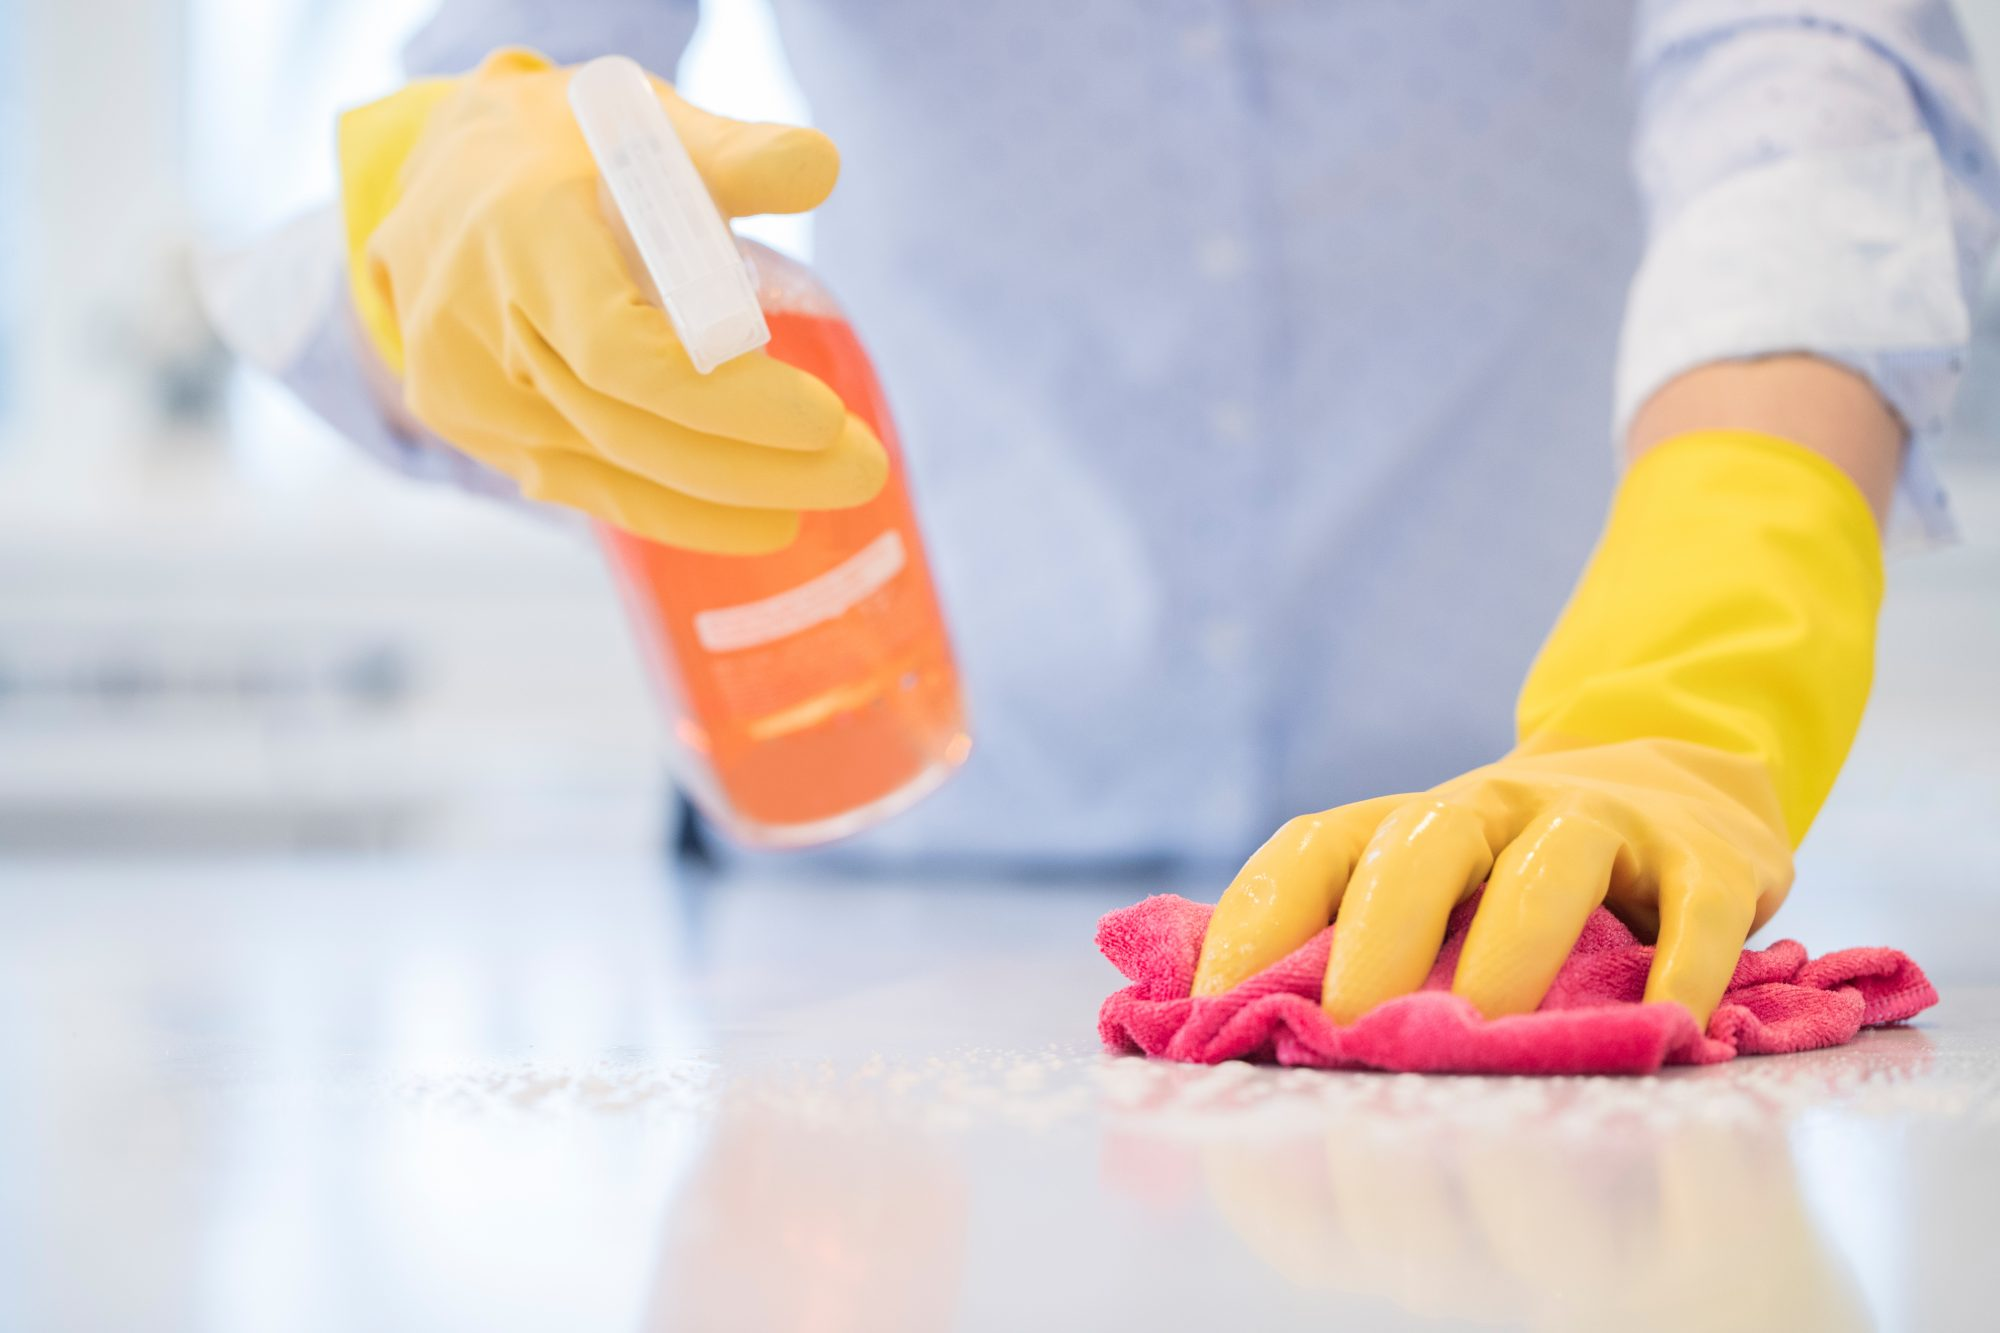 Woman Cleaning Countertop Wearing Gloves